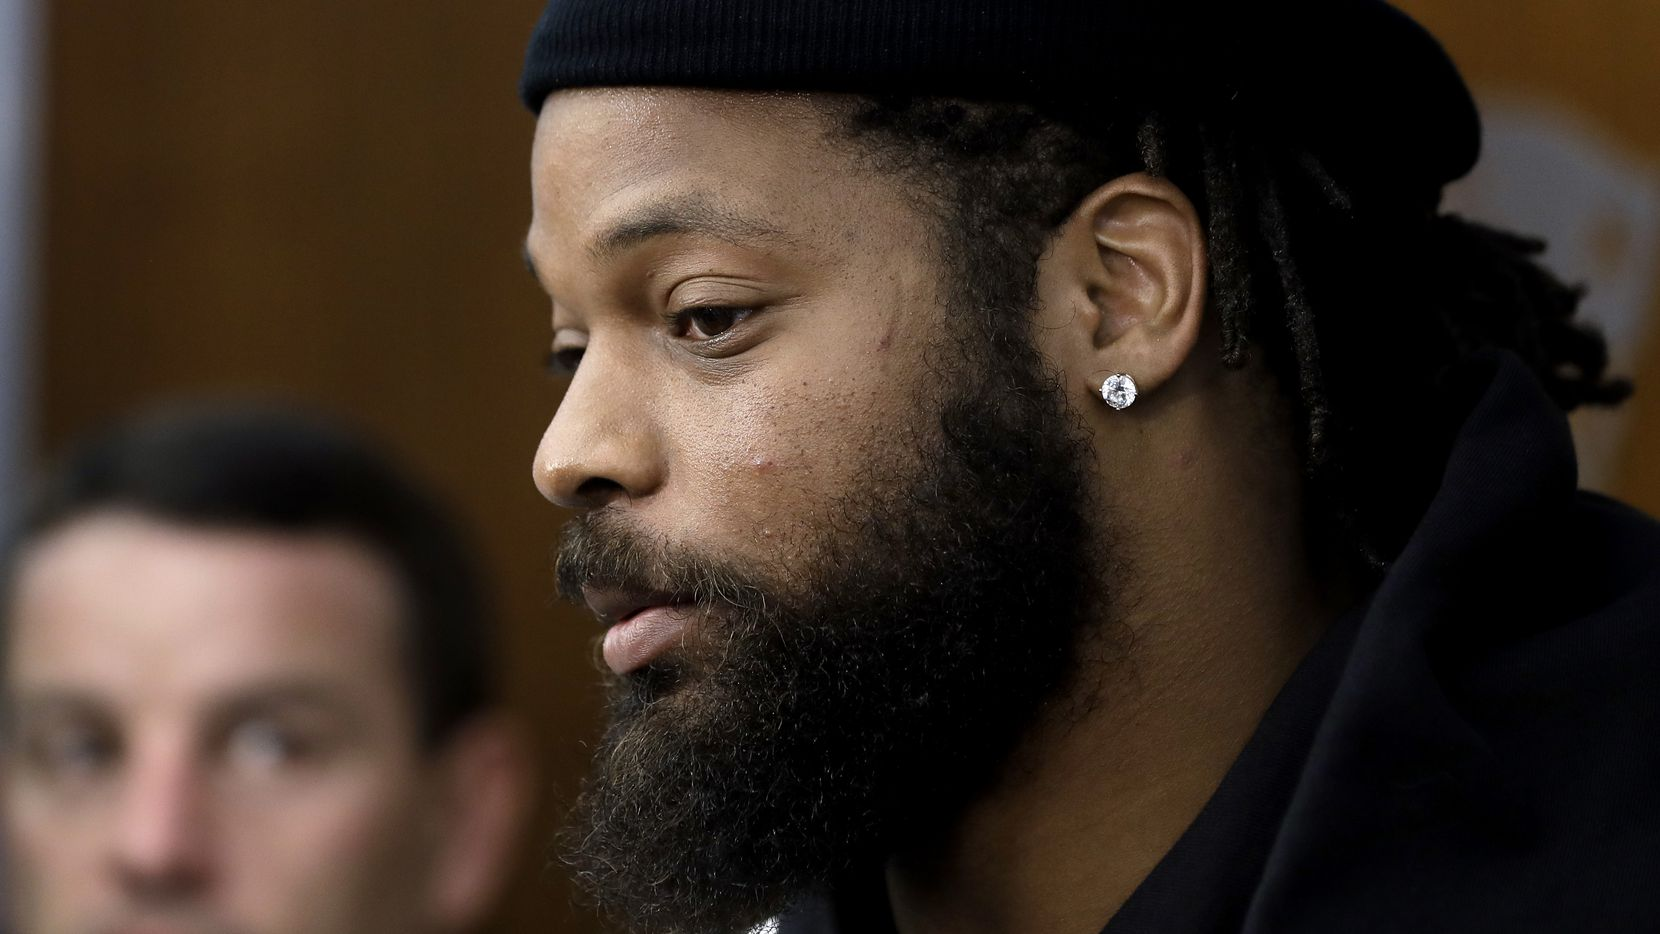 New England Patriots defensive lineman Michael Bennett speaks with members of the media in the team's locker room following an NFL football practice, Wednesday, Oct. 23, 2019, in Foxborough, Mass. (AP Photo/Steven Senne)